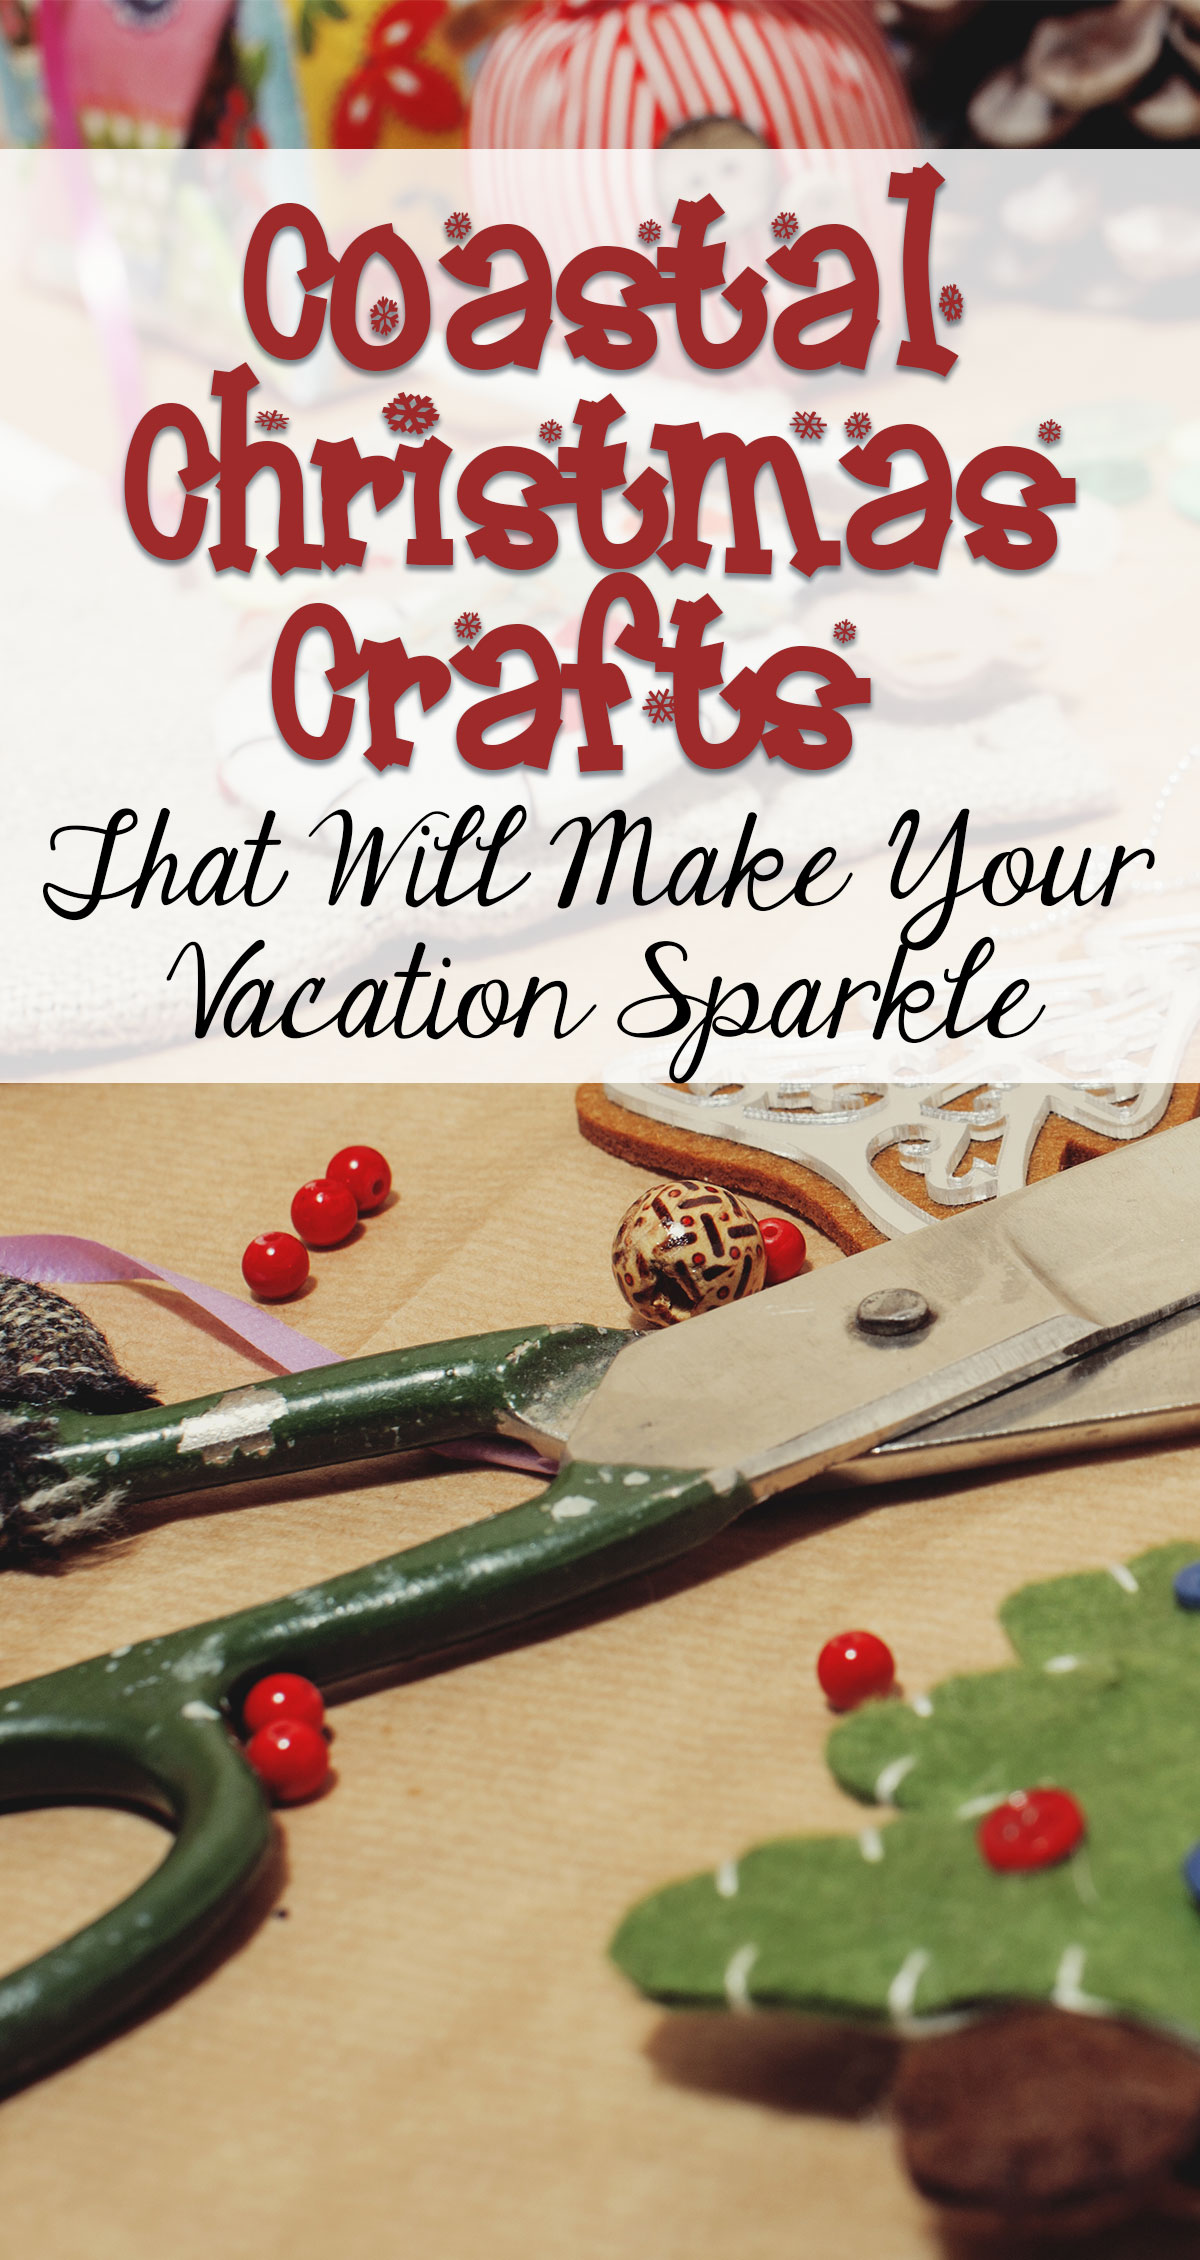 Coastal Christmas Crafts That Will Make Your Vacation Sparkle Pin